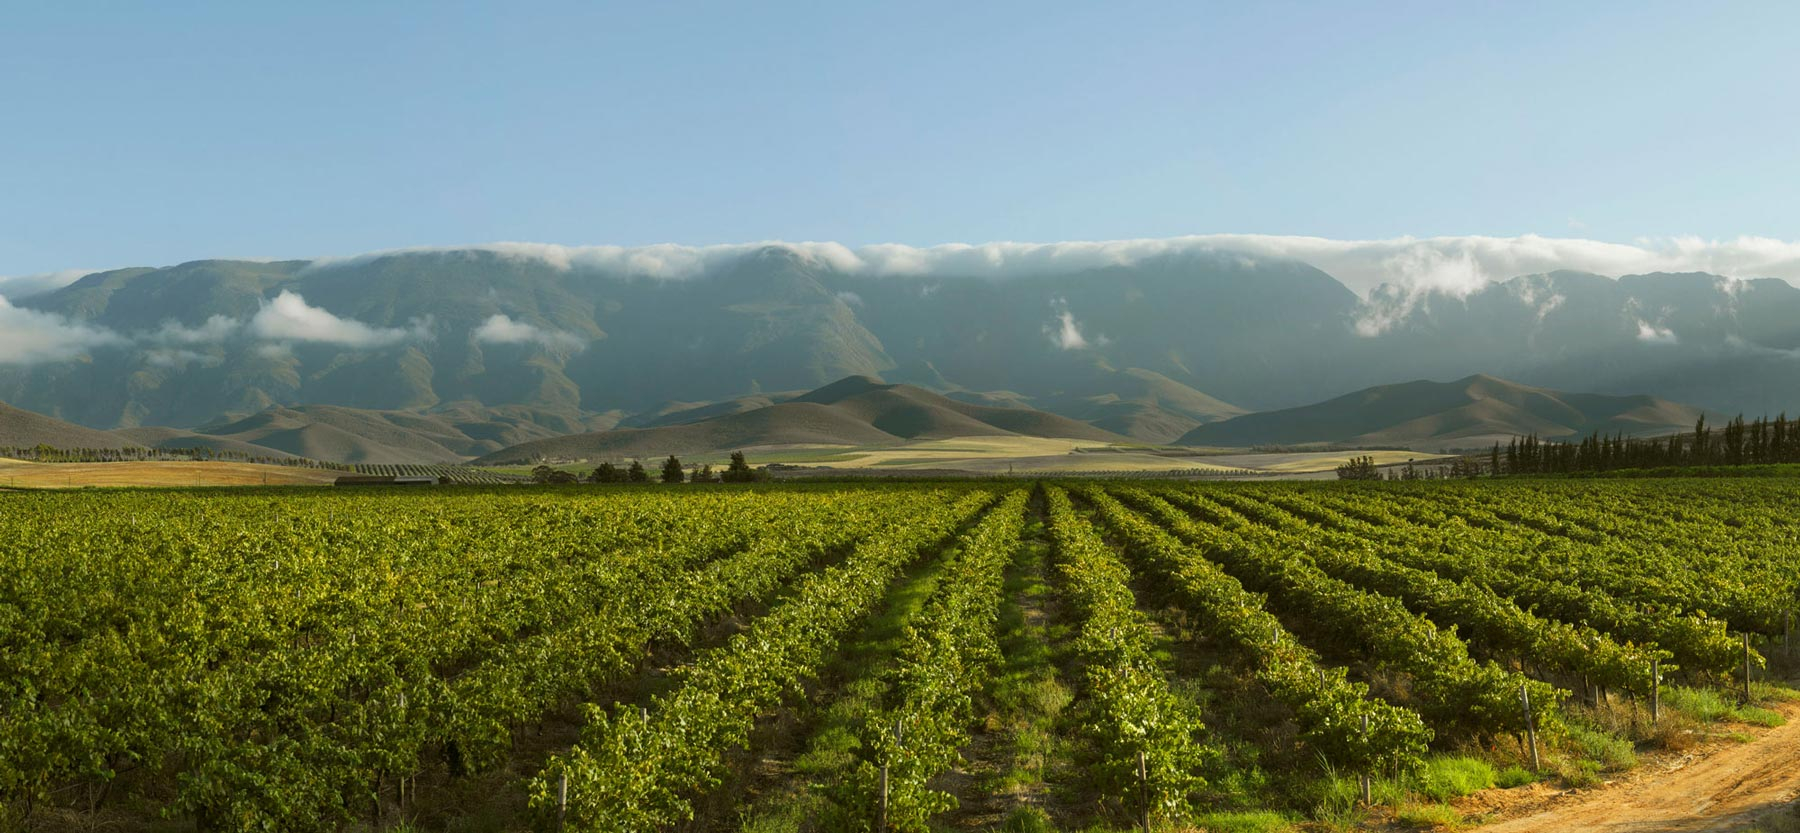 Vineyards and mountains around McGregor